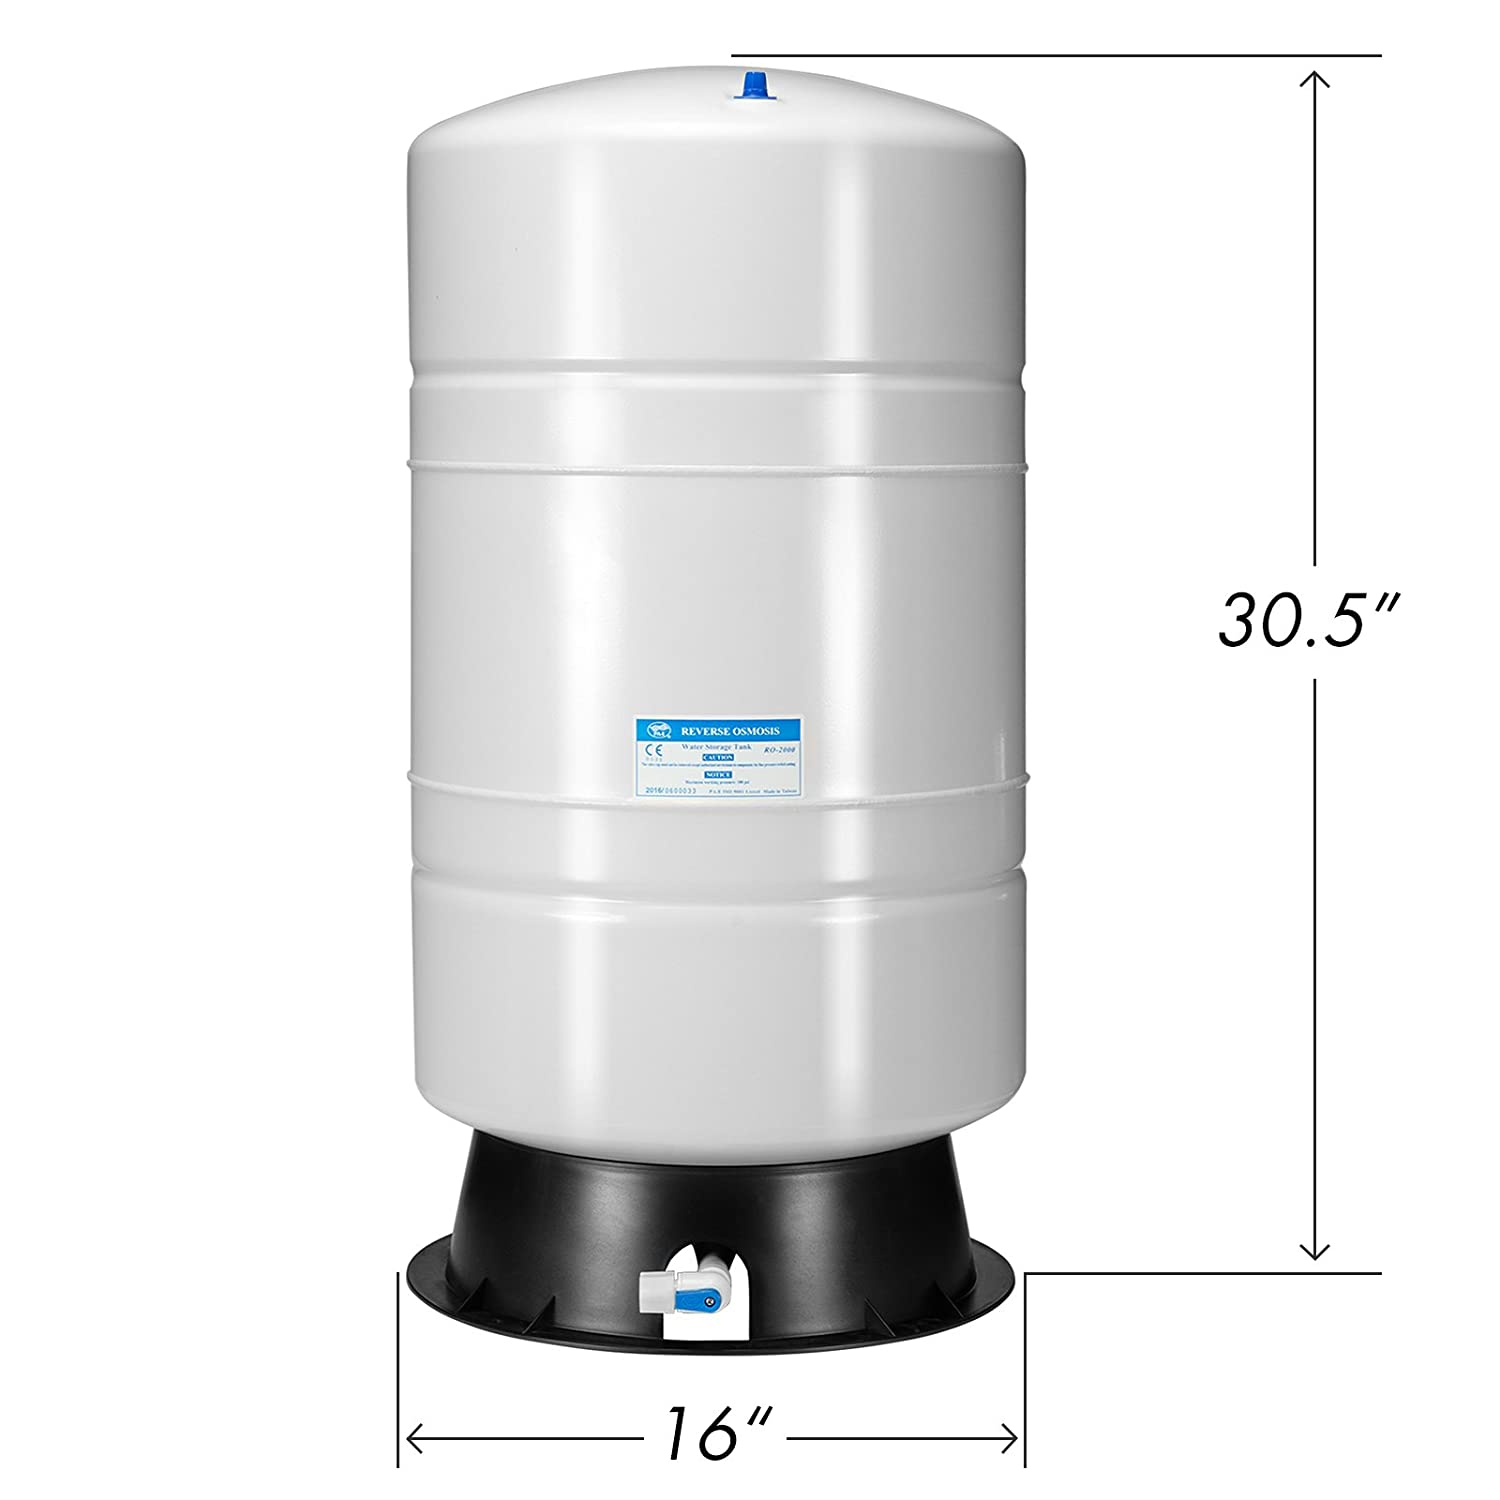 Amazon iSpring 20 gallon tank with 14 gallon Storage Capacity